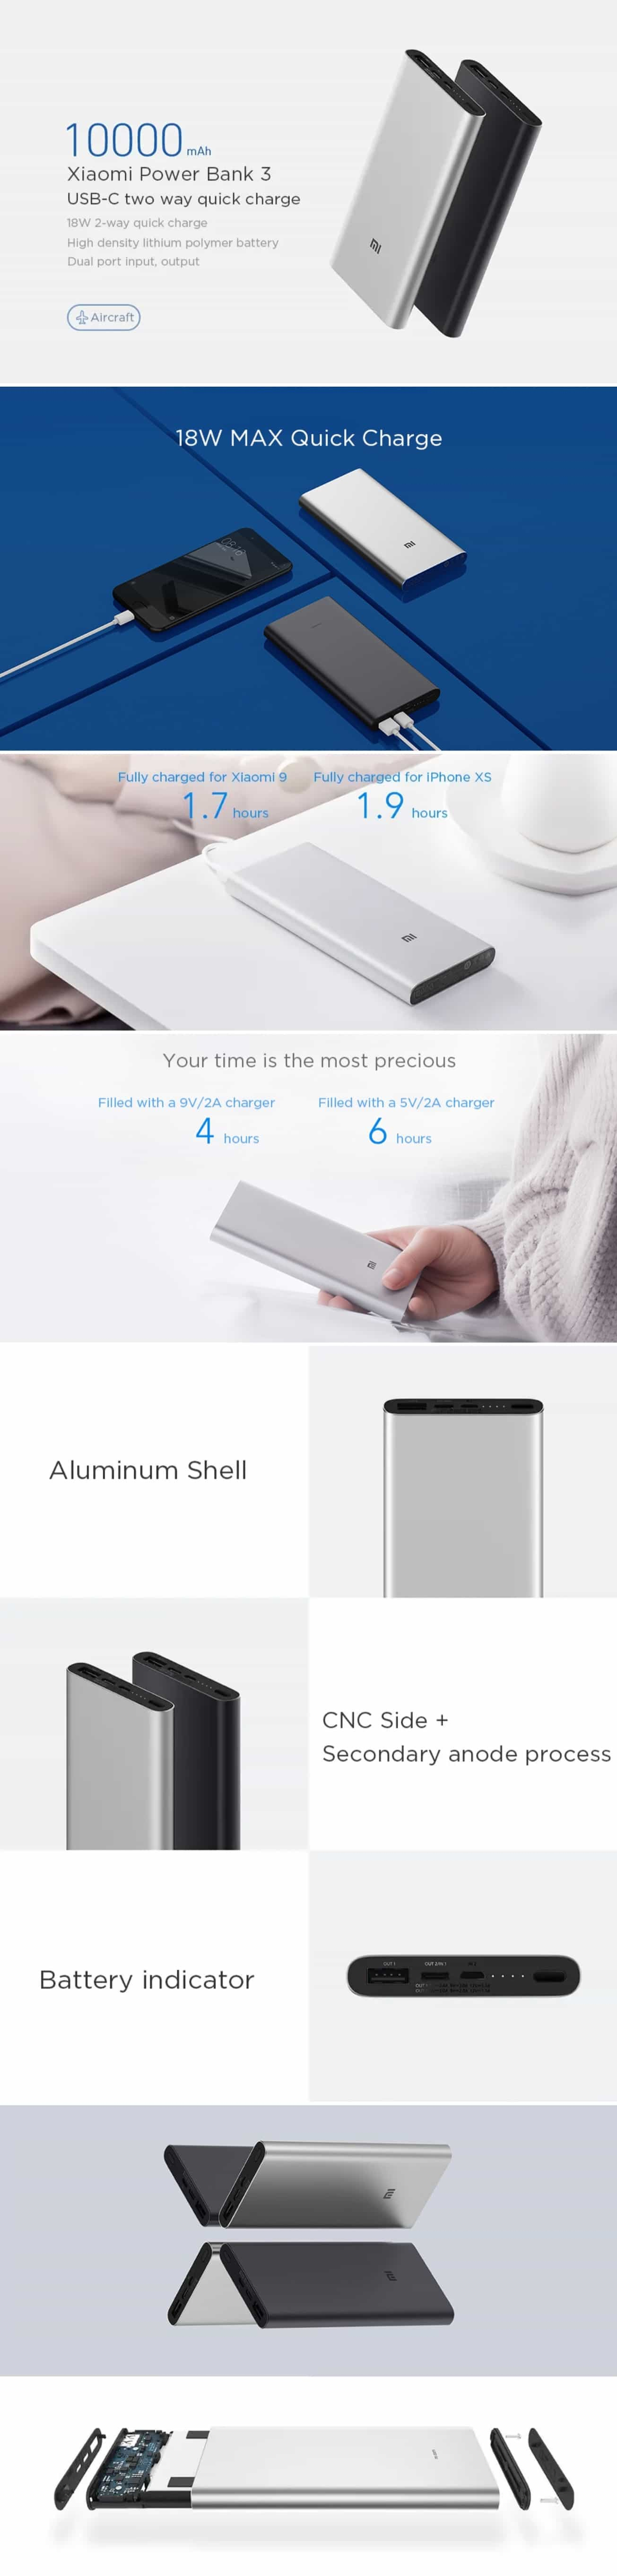 Prezentare-Xiaomi-Mi-Power-Bank-39816245e9ab19430.jpg